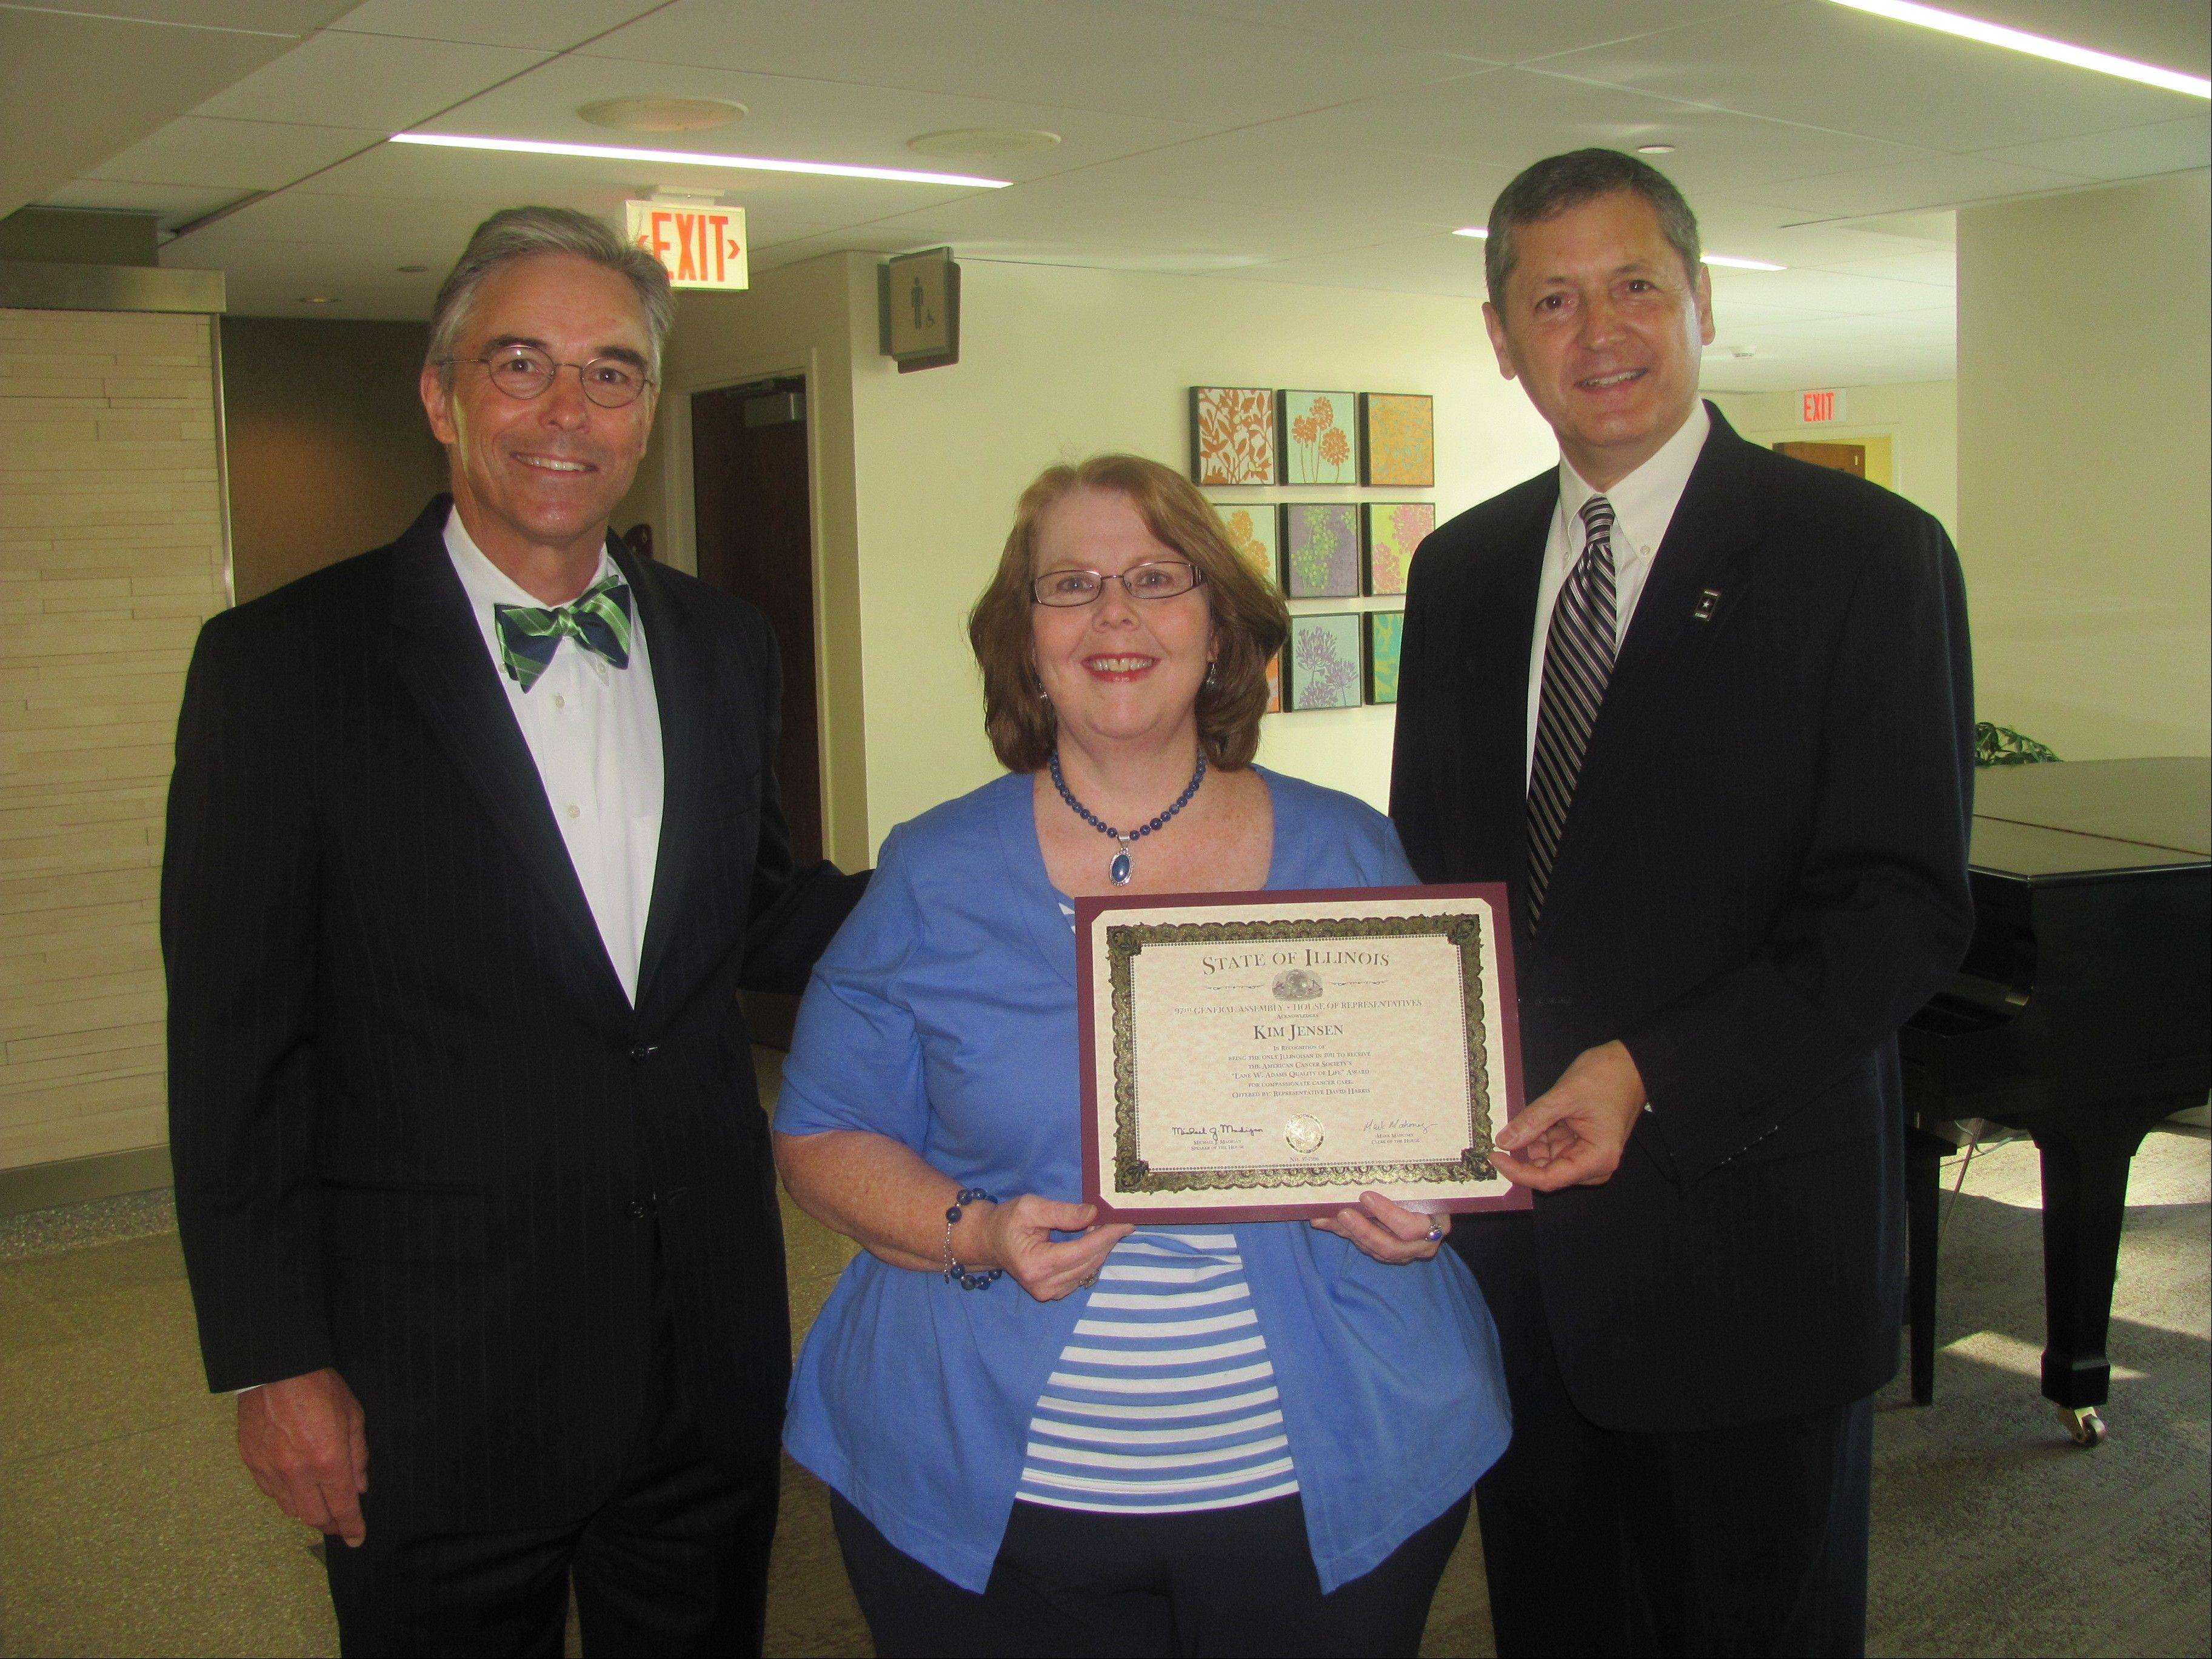 Kim Jensen, an oncology social worker at Northwest Community Hospital, receives congratulations from hospital President and CEO Bruce Crowther, left, and state Rep. David Harris. She was honored for her work with cancer patients and their families.